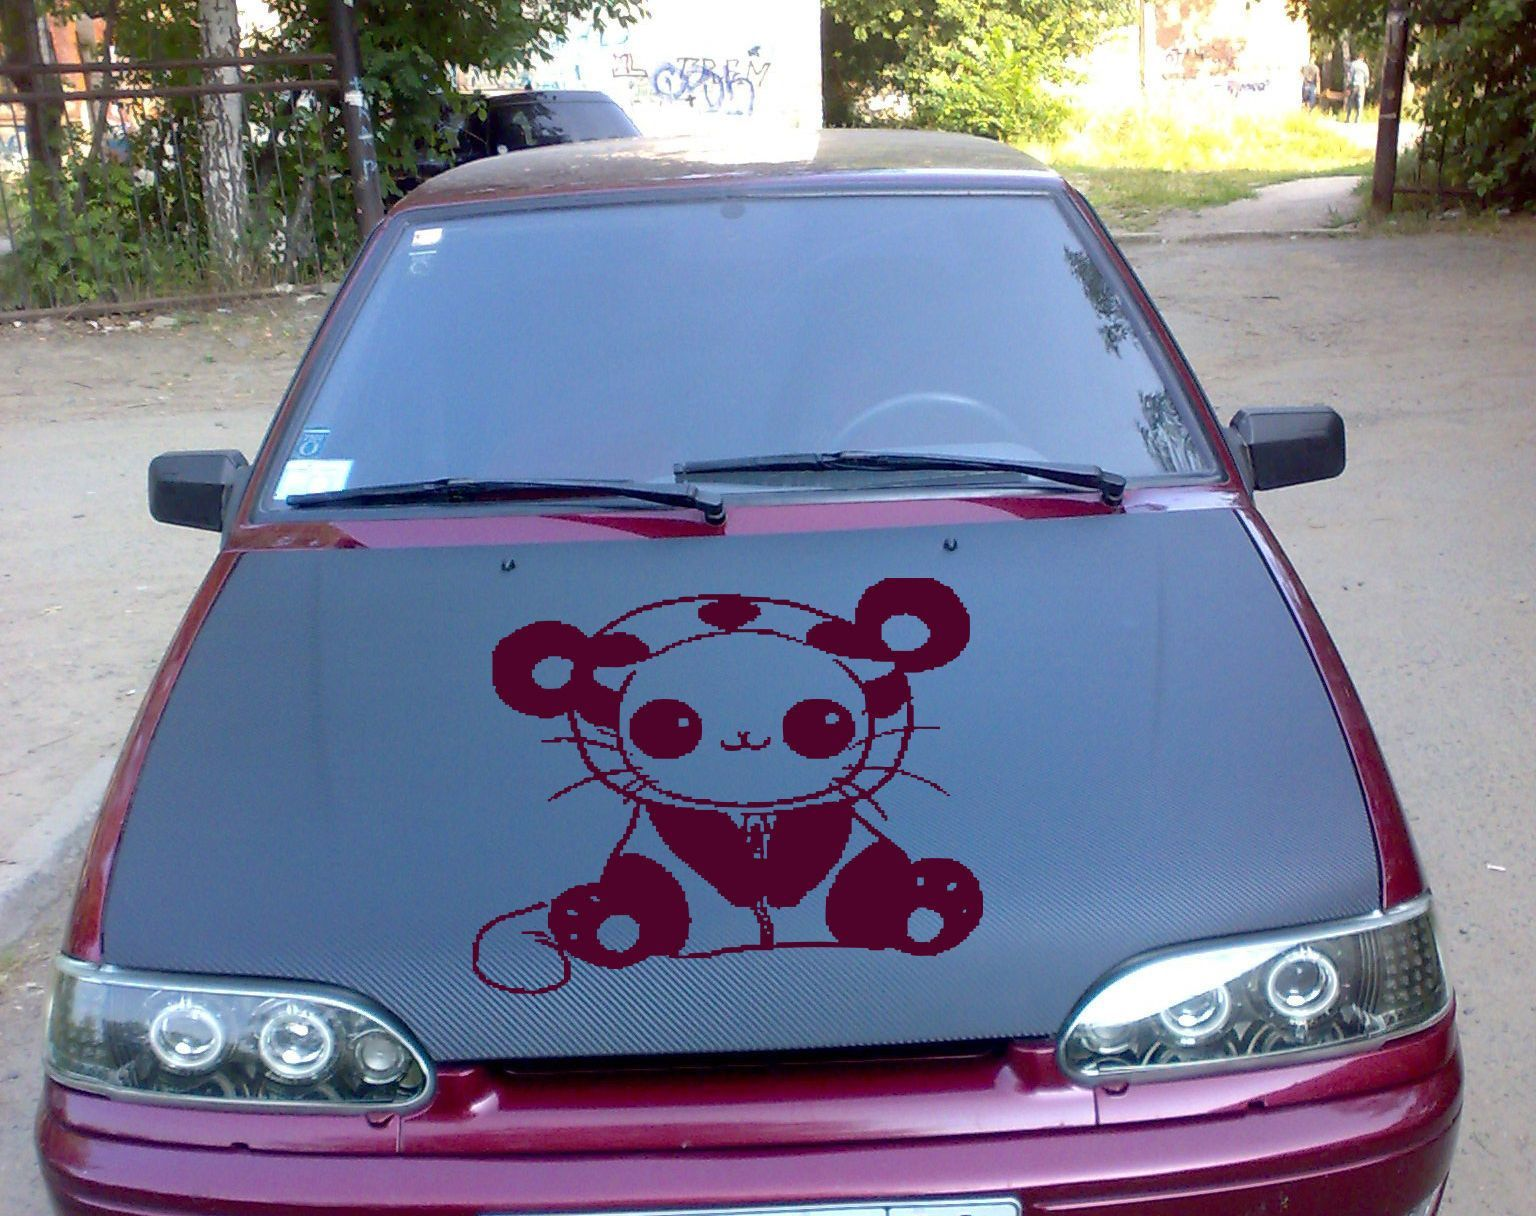 Anime Car Decal Car Decal Car Sticker Funny Toy Car Vinyl Anime Vinyl 10193 2 Car Stickers Funny Car Decals Stickers Transformers Cars [ 1216 x 1536 Pixel ]